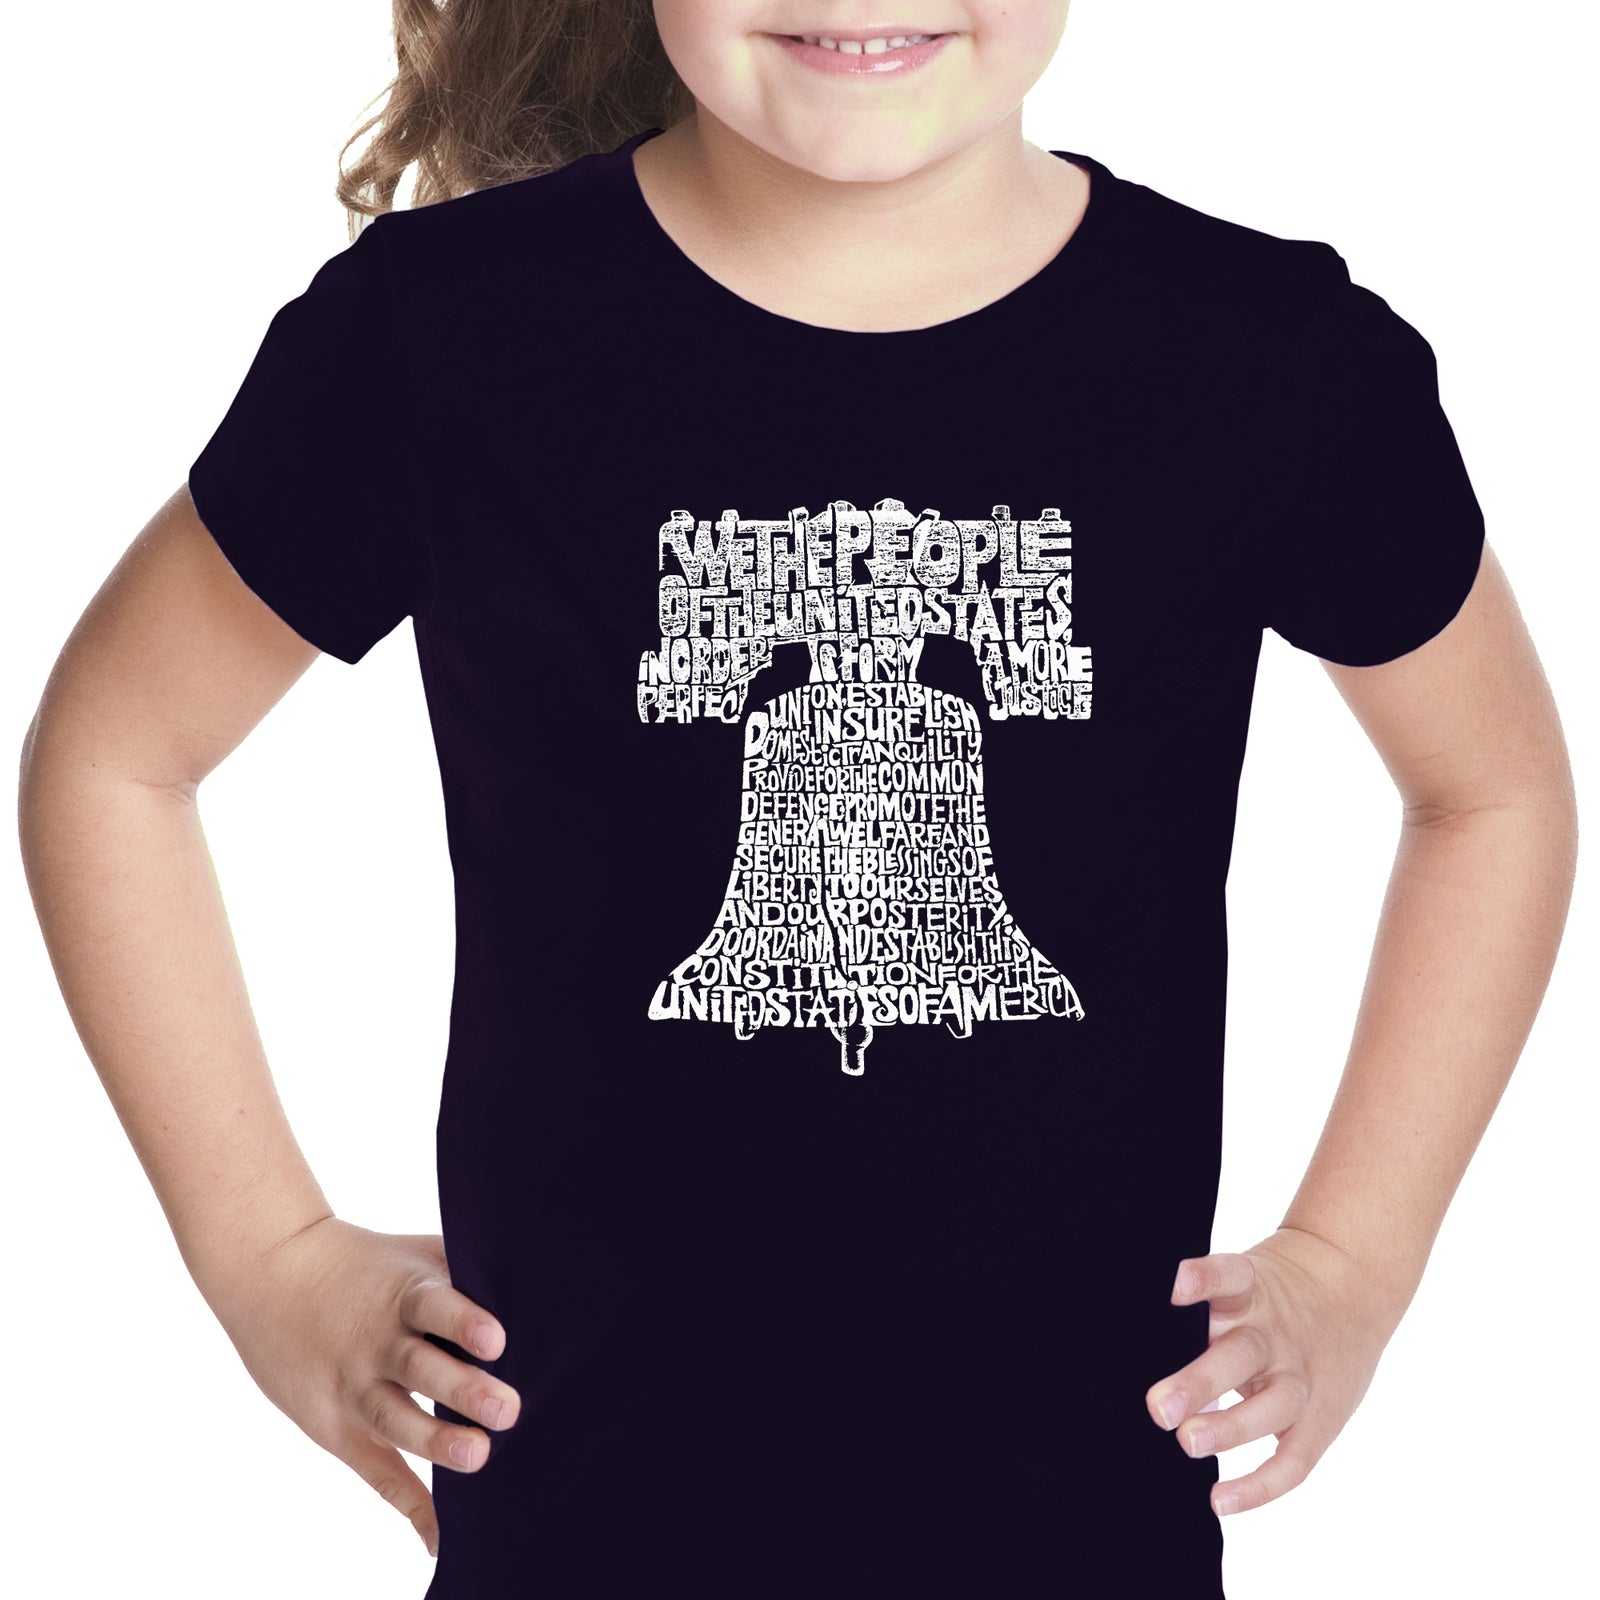 Girl's T-shirt - Liberty Bell